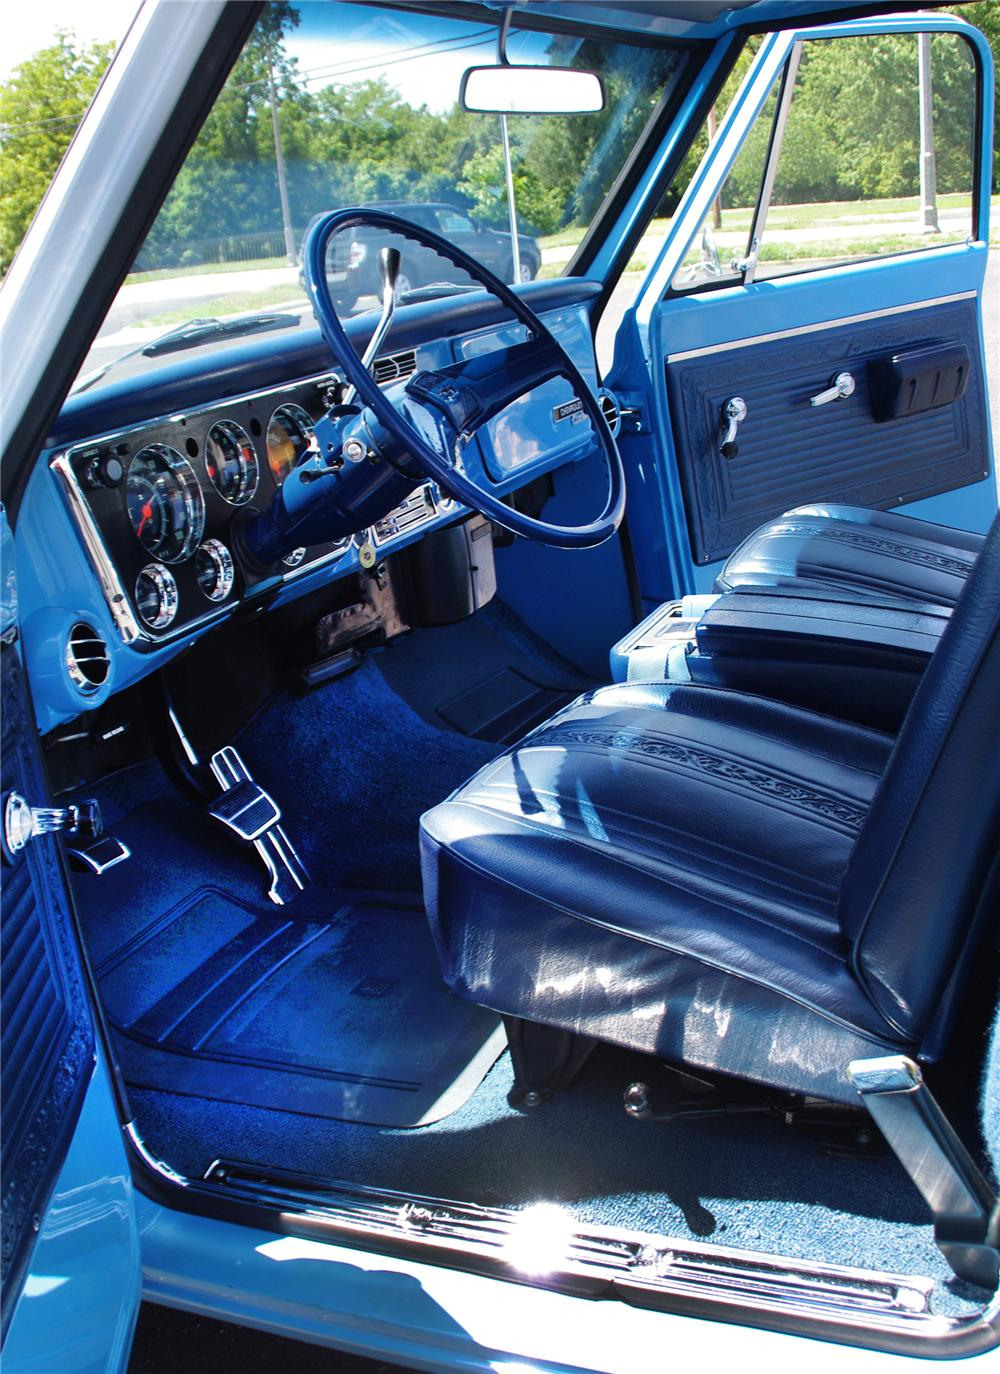 1969 CHEVROLET C-10 PICKUP - Rear 3/4 - 112632